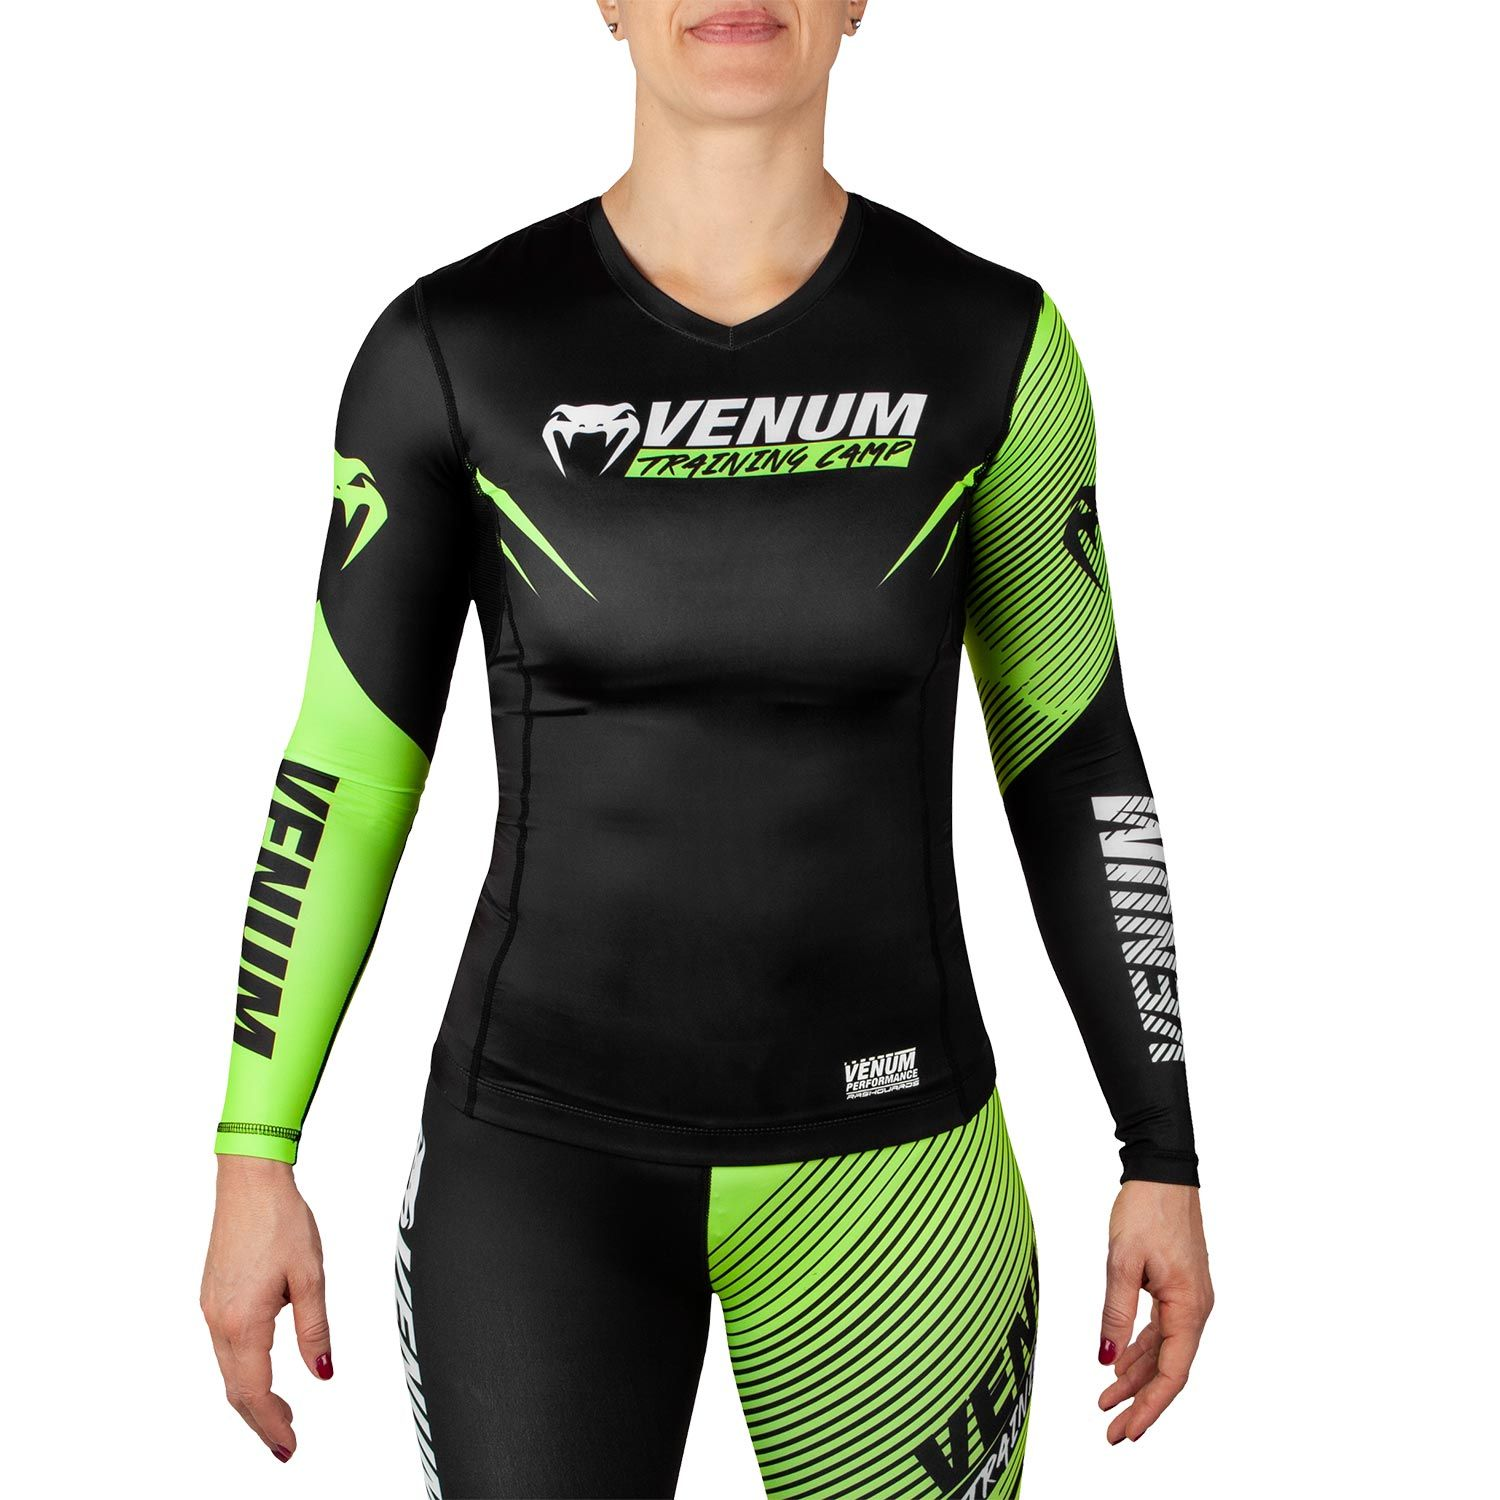 Rashguard Venum Training Camp 2.0 - Mangas Largas - Para Mujer